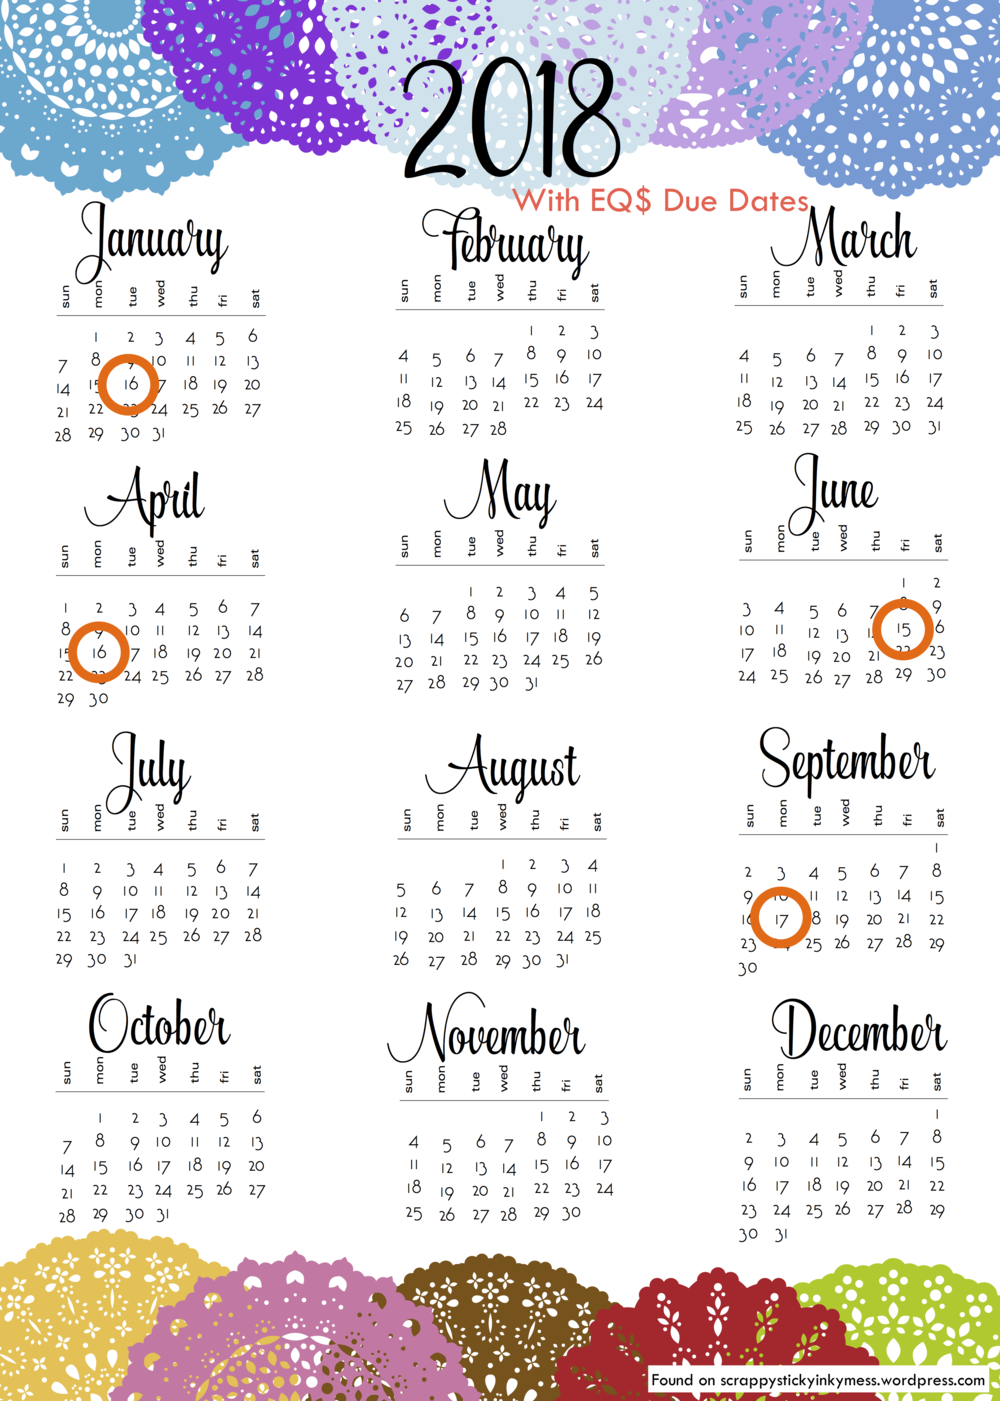 To download original calendar,  click here .  Thank you to scrappystickyinkymess.wordpress.com.